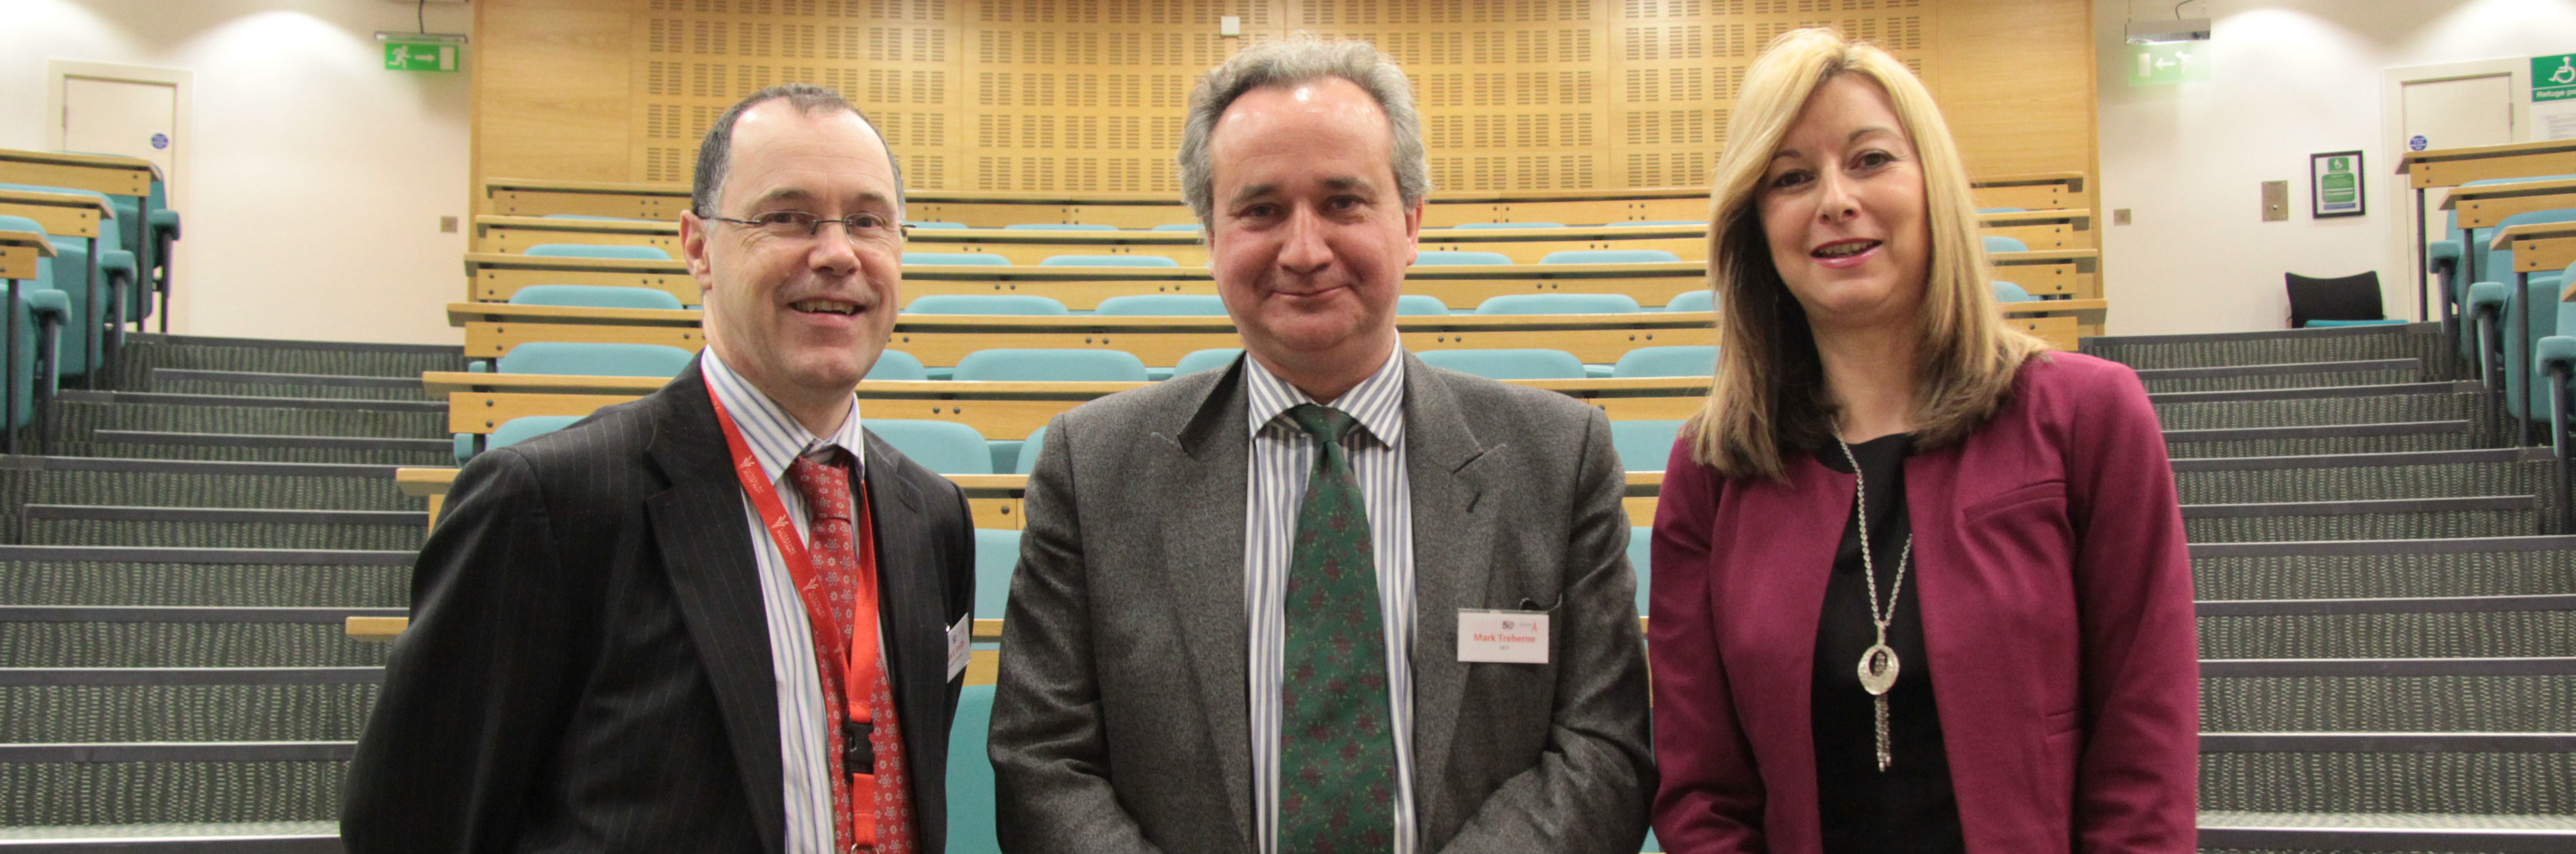 Professor Mark E. Smith, Dr Mark Treherne, and Dr Liz Mear